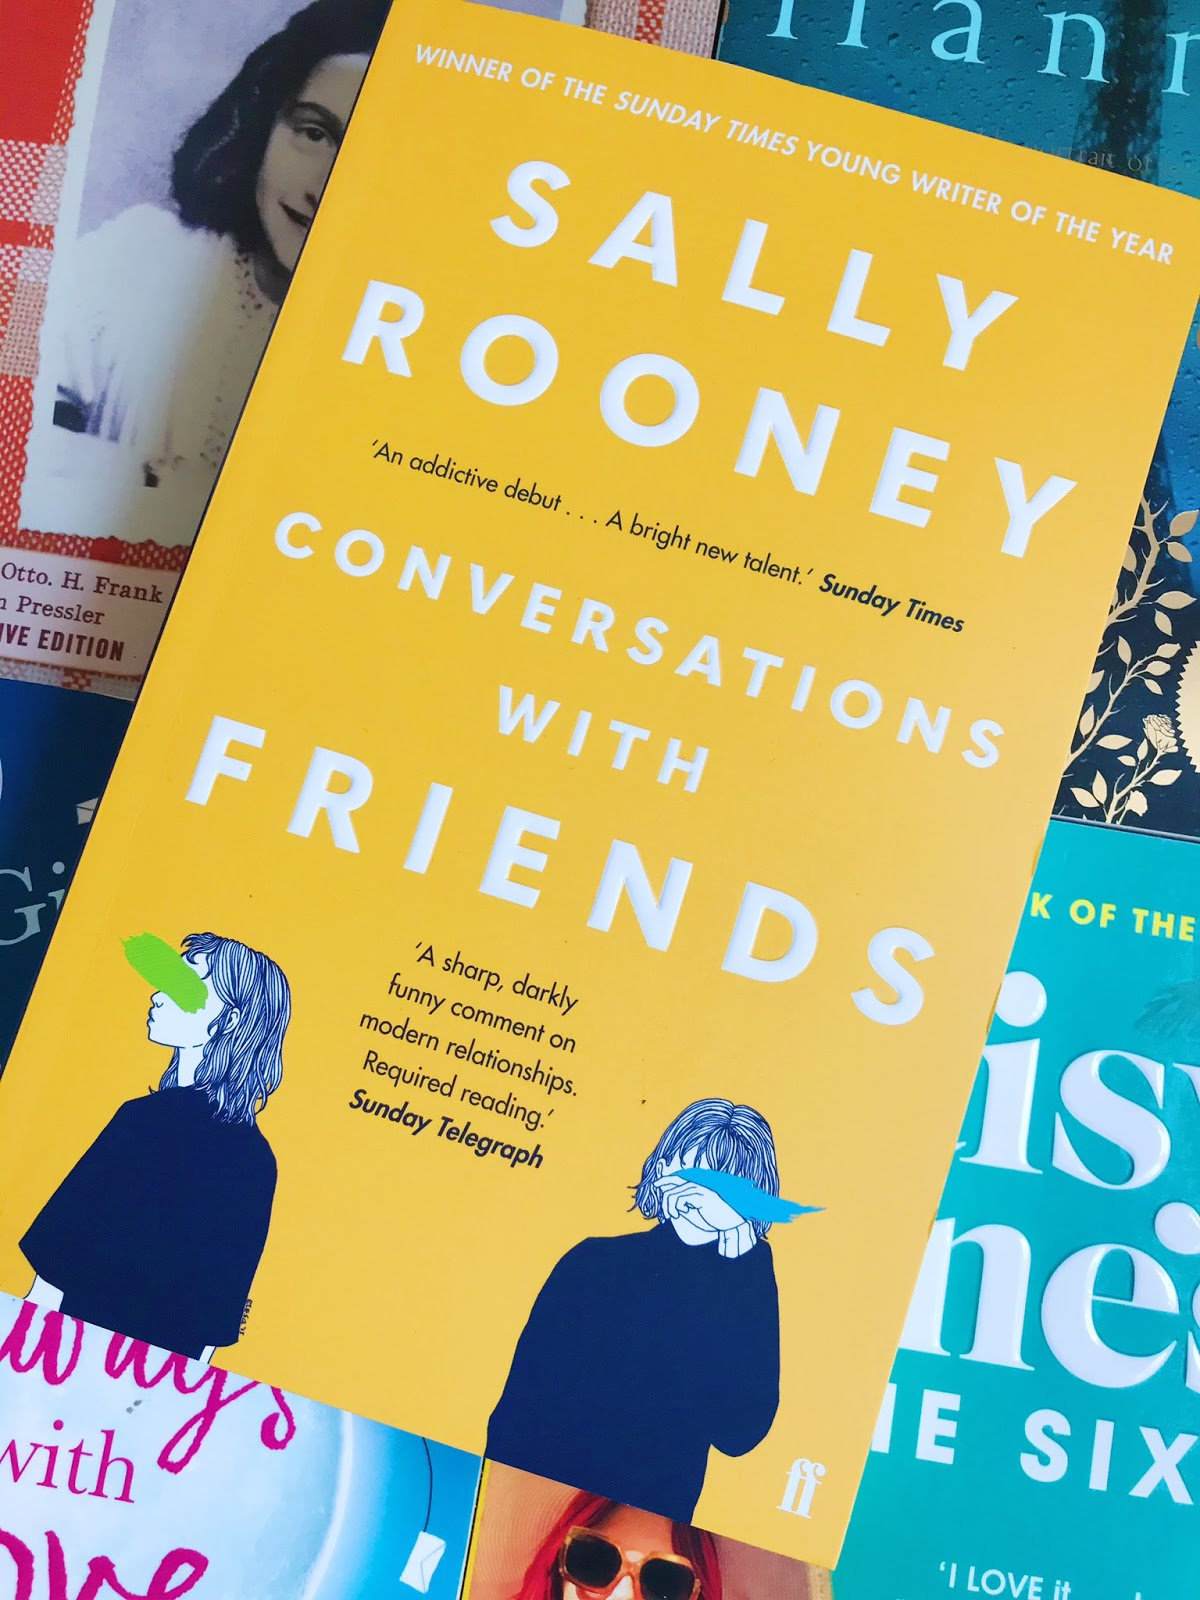 Conversations With Friends by Sally Rooney book on top of 4 other books